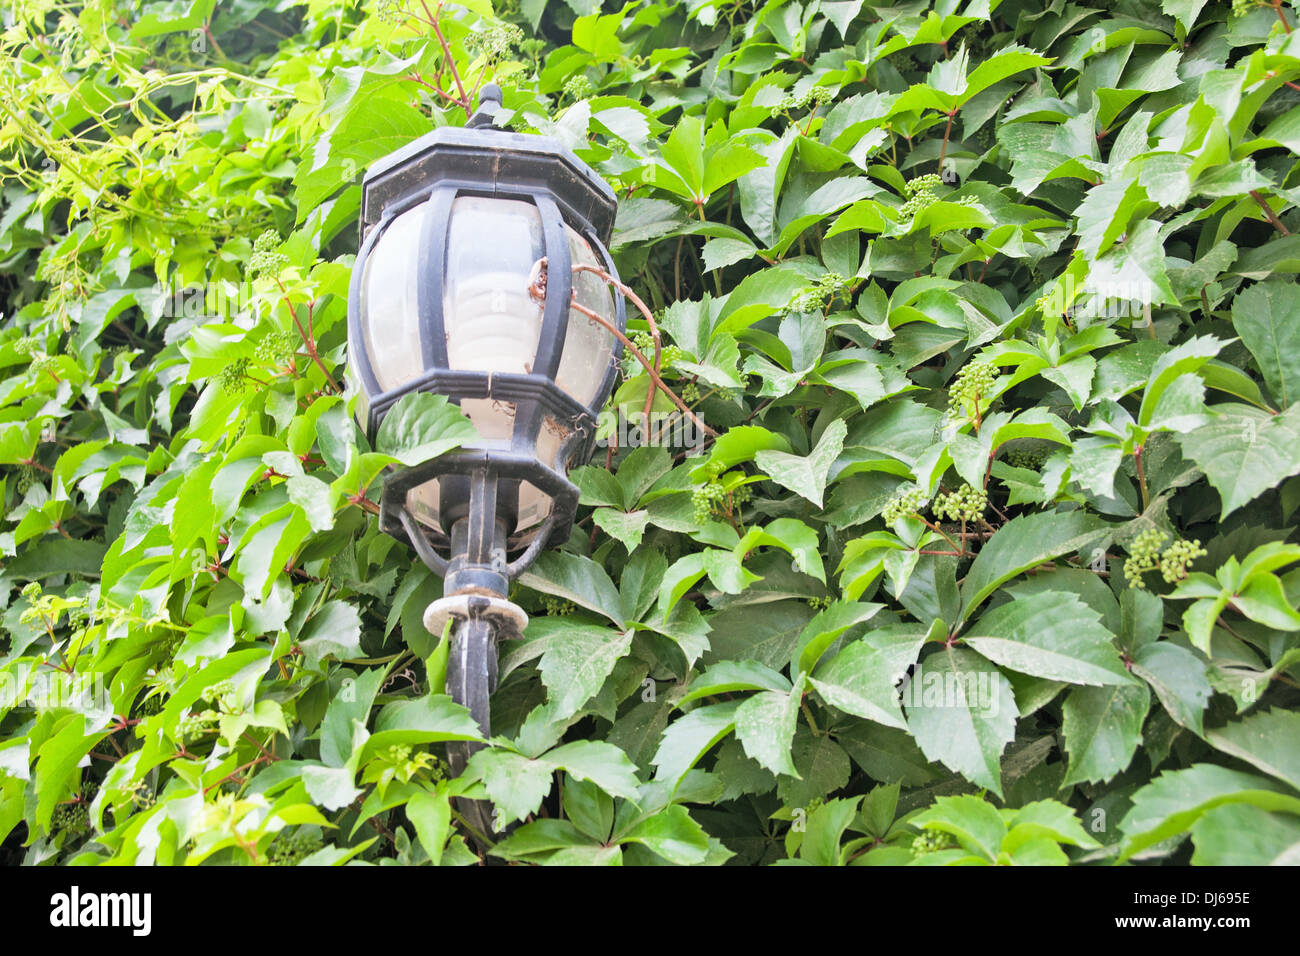 View of a green street lamp and a green leaf - Stock Image